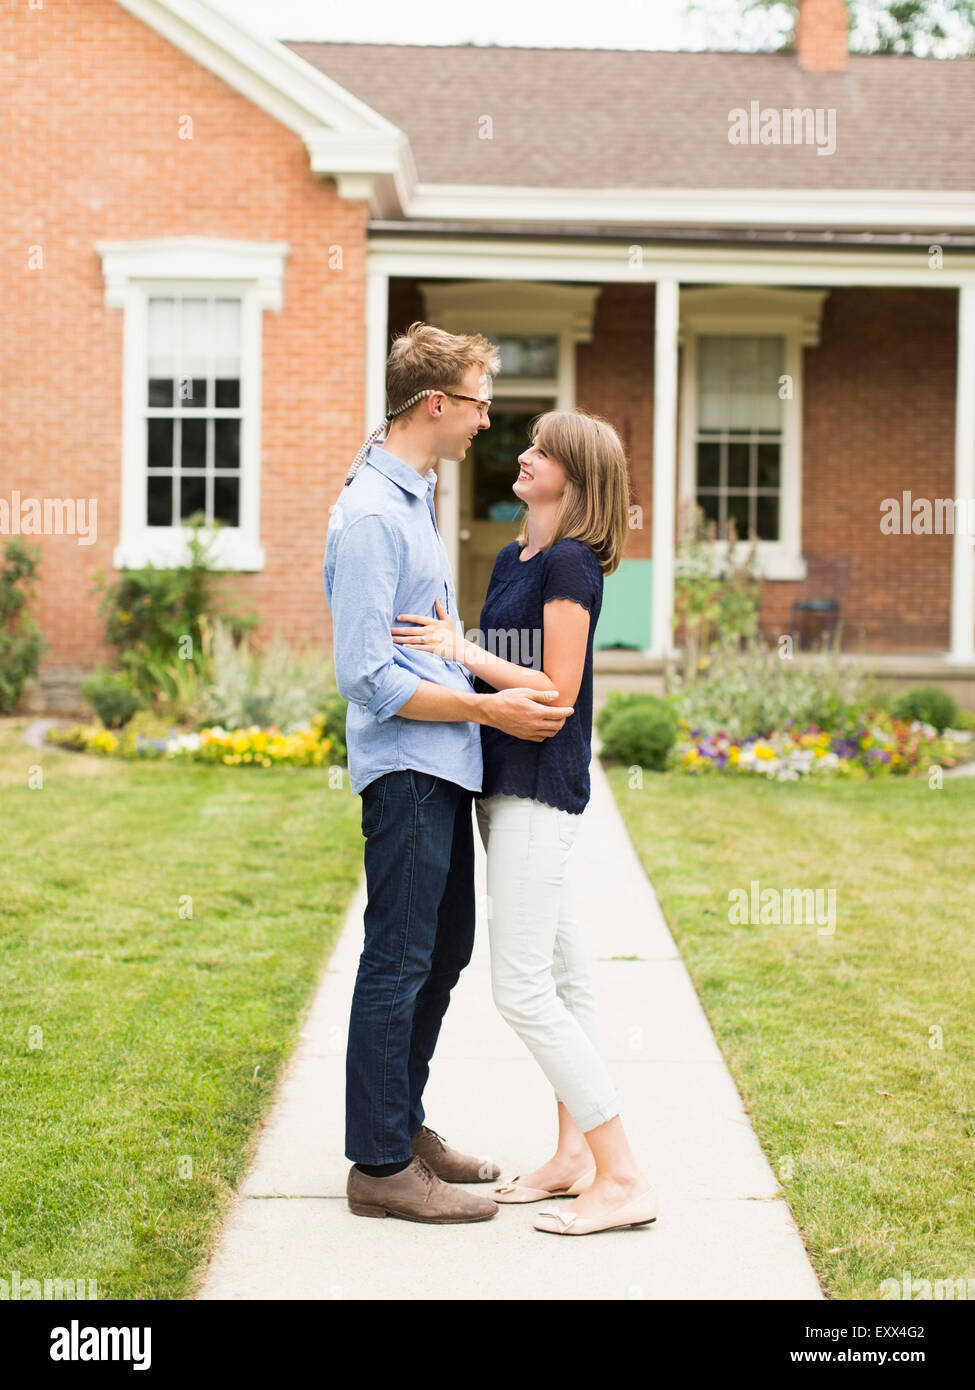 Young couple standing on footpath in front of house - Stock Image